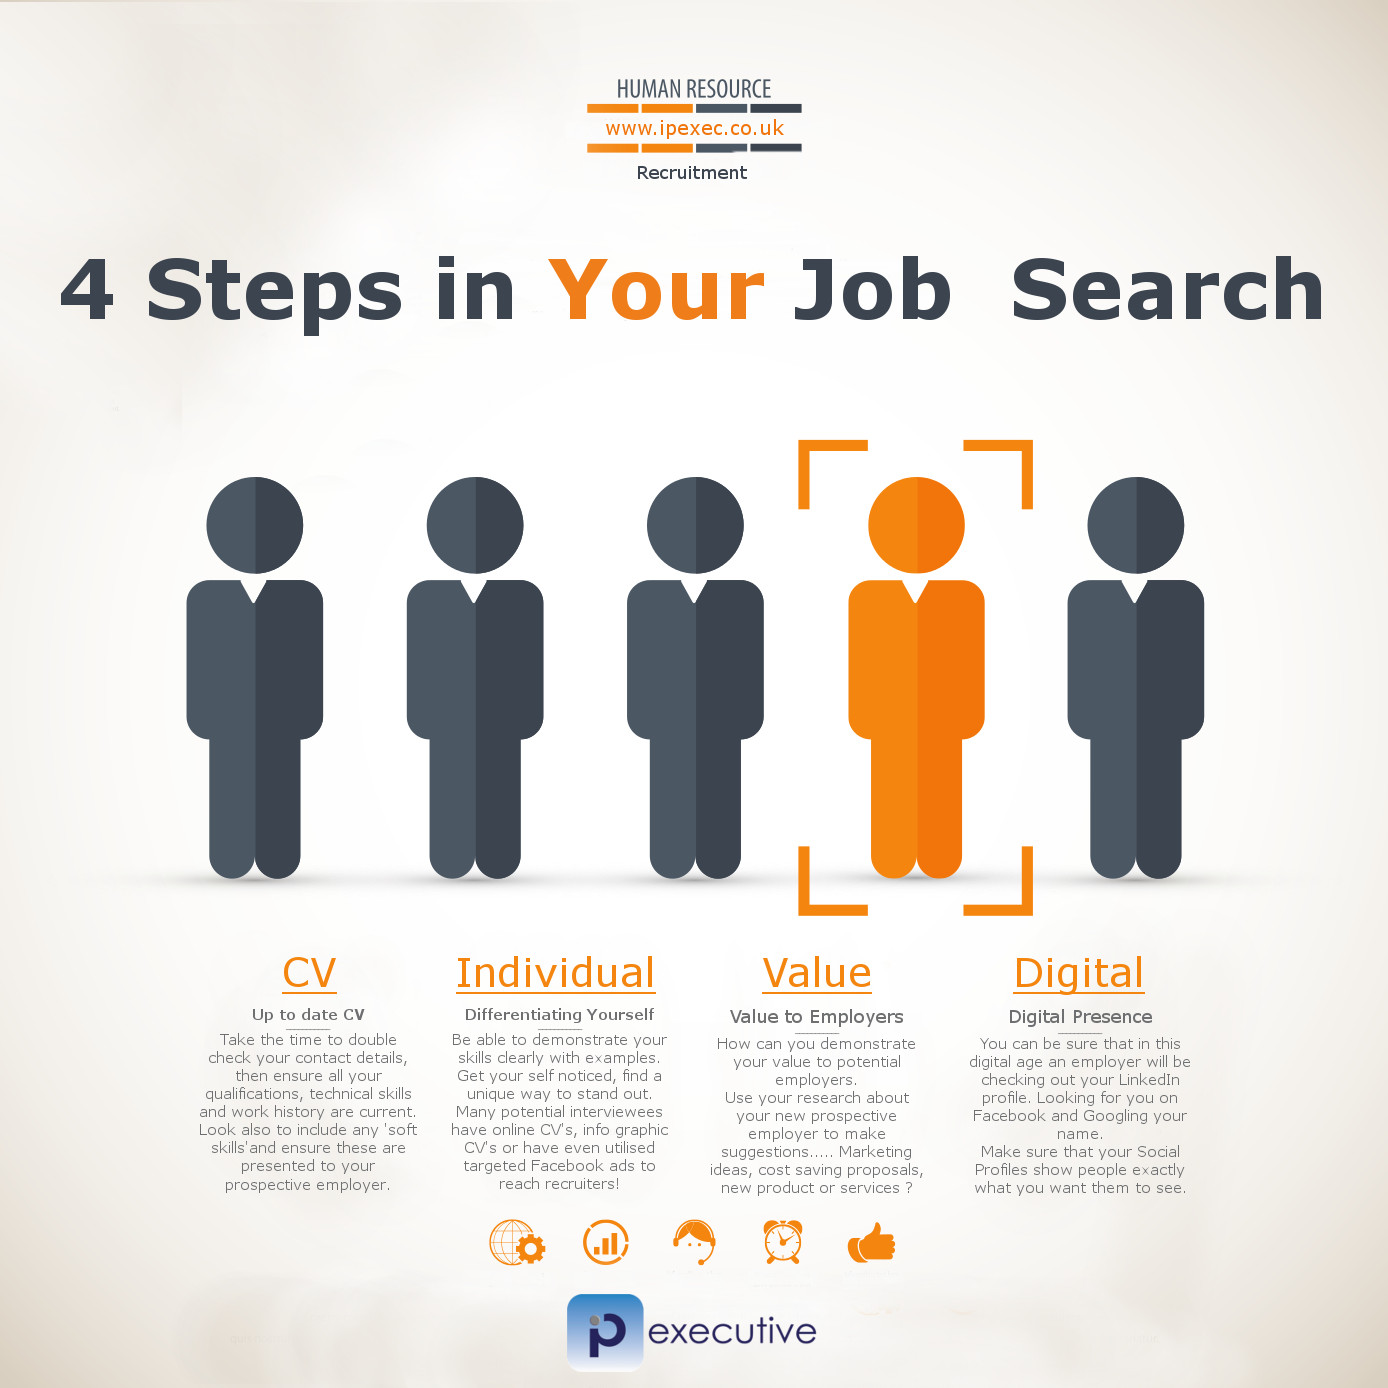 Job hunting advice 4 steps in your job search from IPExec